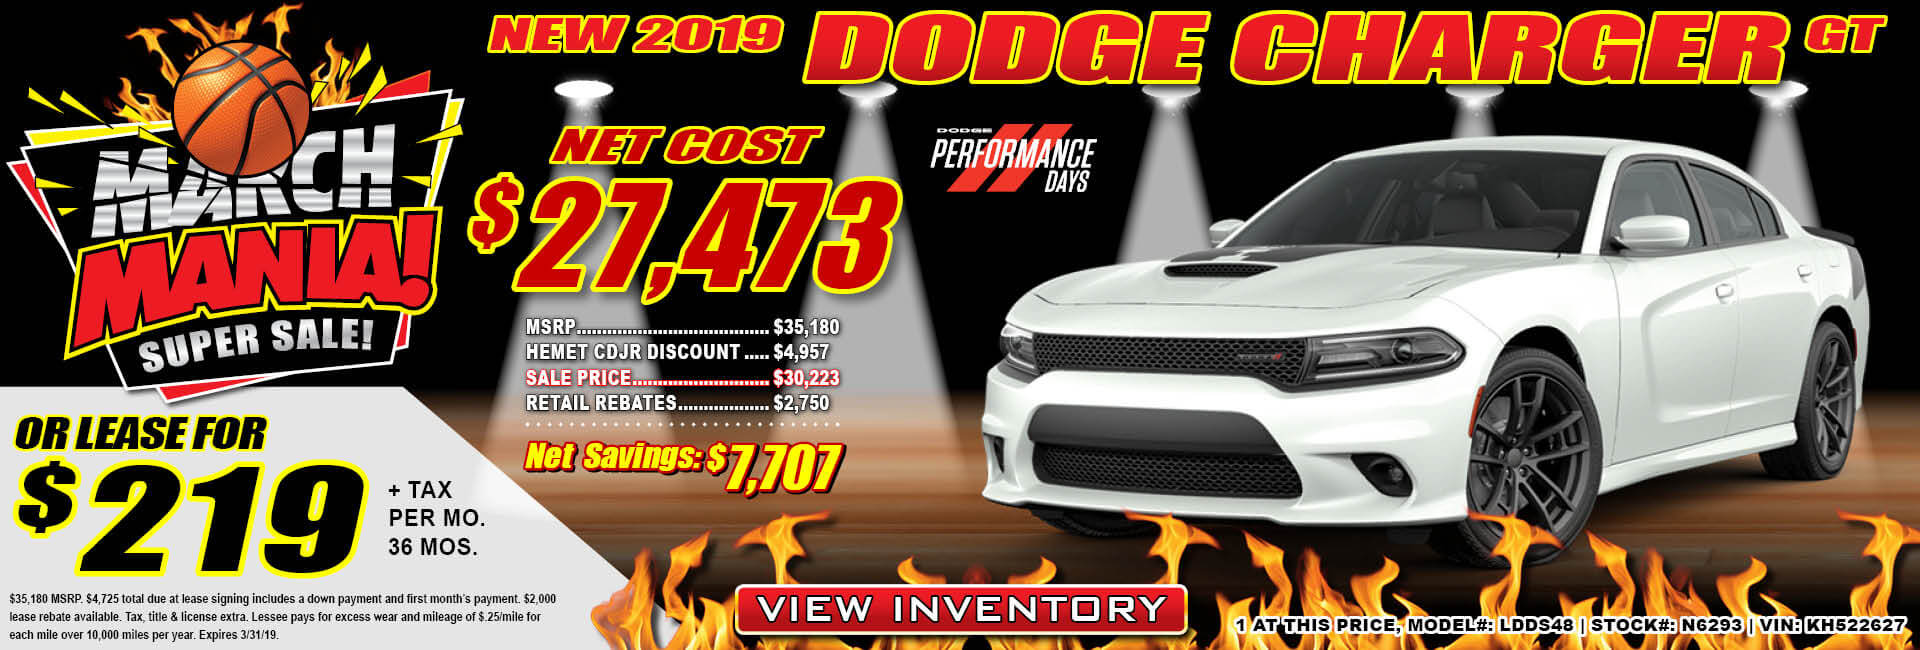 Dodge Charger Lease $219